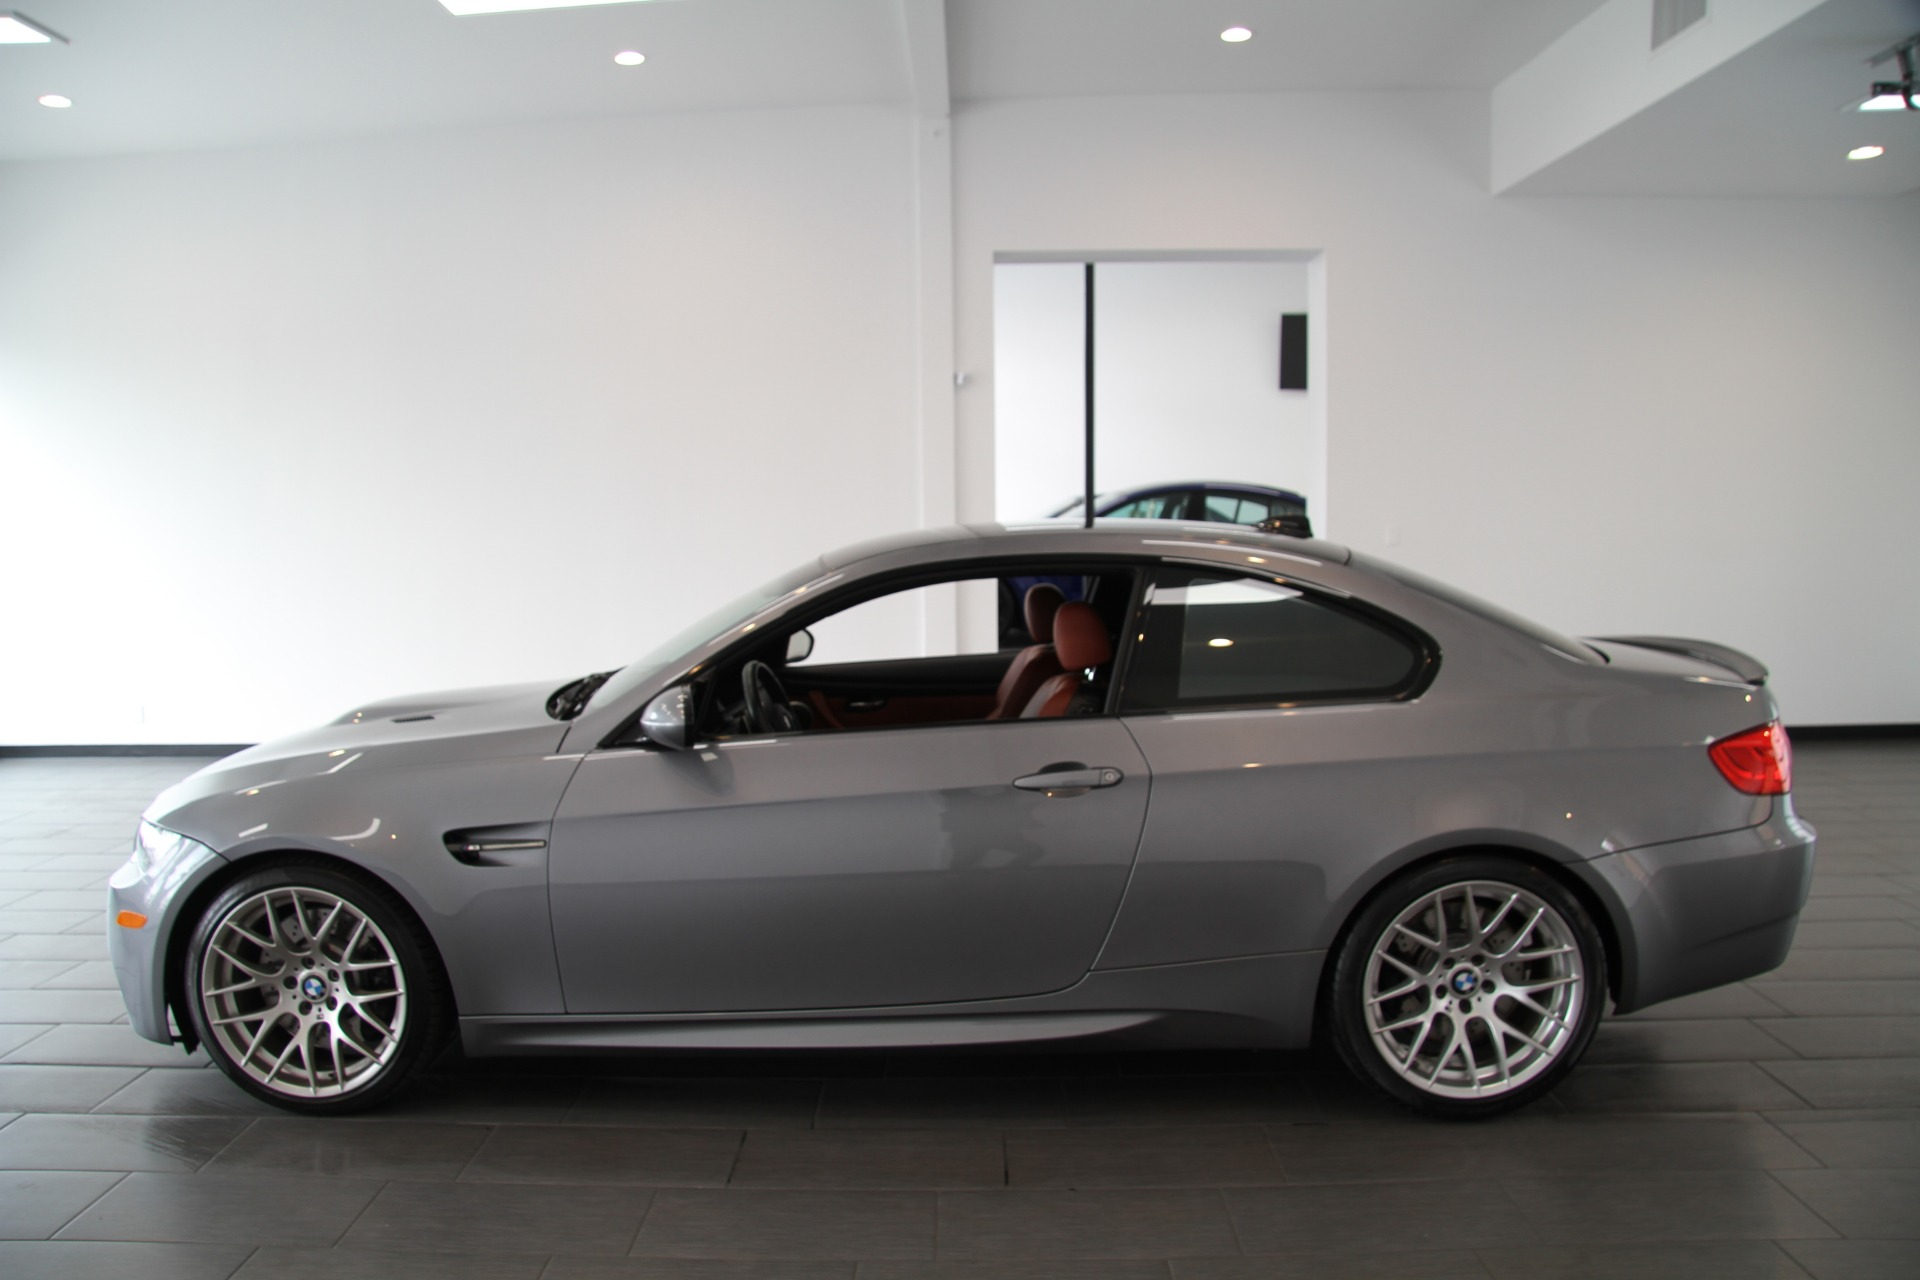 Bmw Dealer Near Me >> 2011 BMW M3 *** COMPETITION PACKAGE *** Stock # 6135 for ...